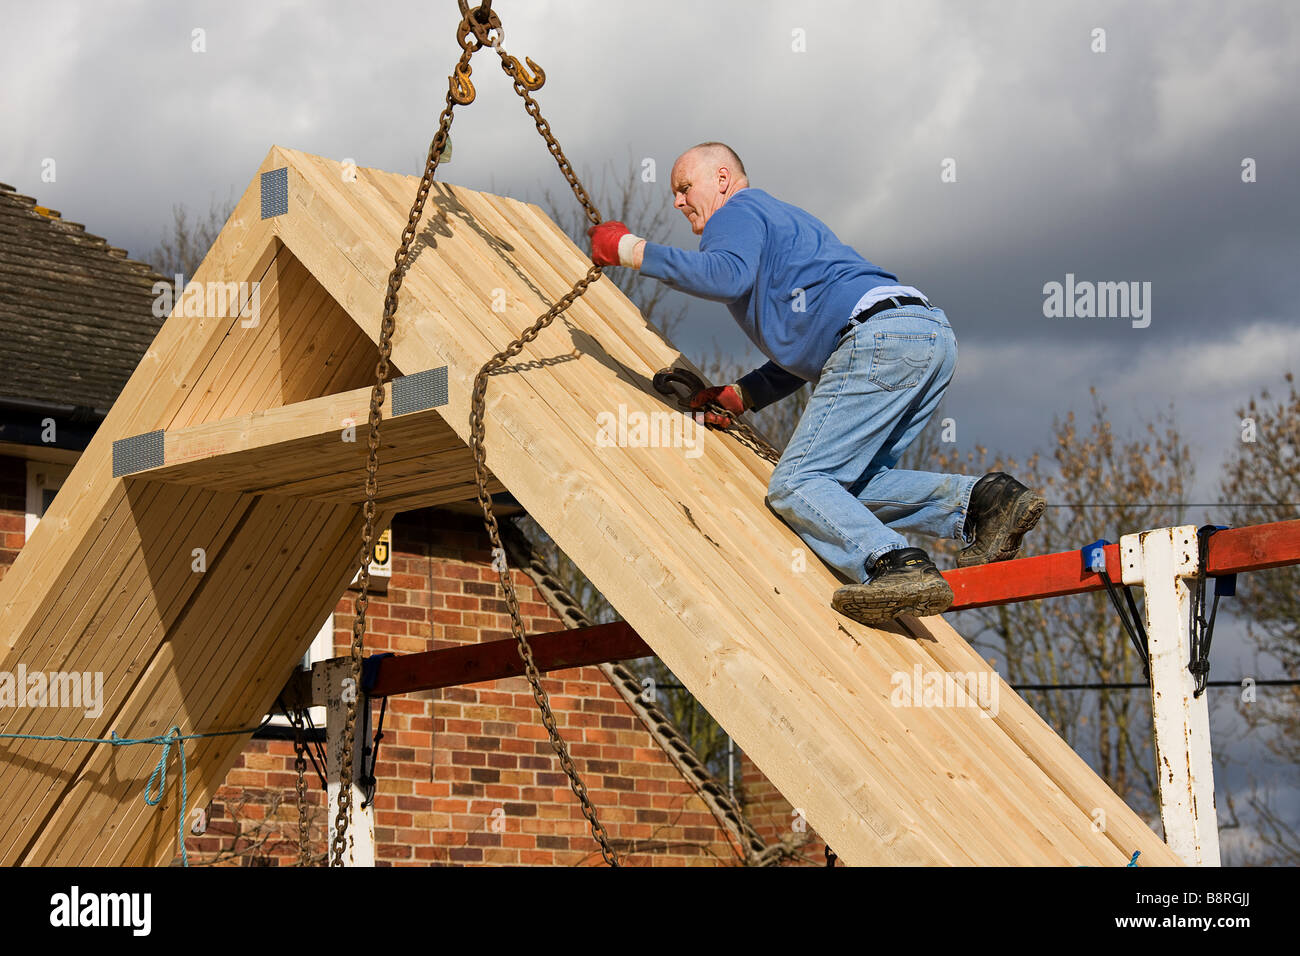 Attaching lifting chains from crane jib around timbers of the roof trusses, ready for them to be lifted from delivery - Stock Image